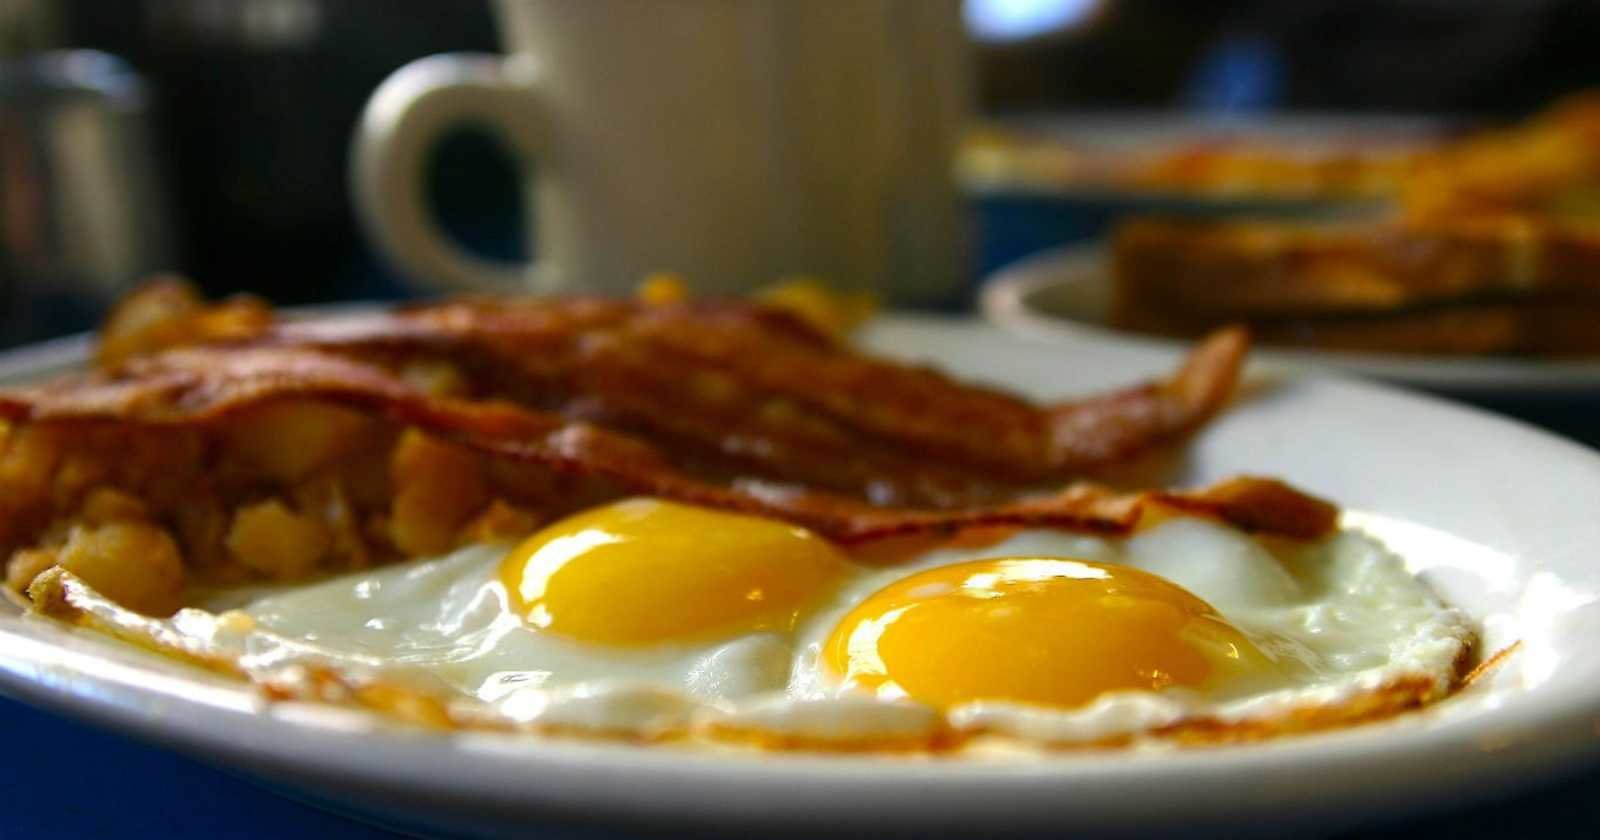 The Price of Bacon and Eggs The Year You Were Born